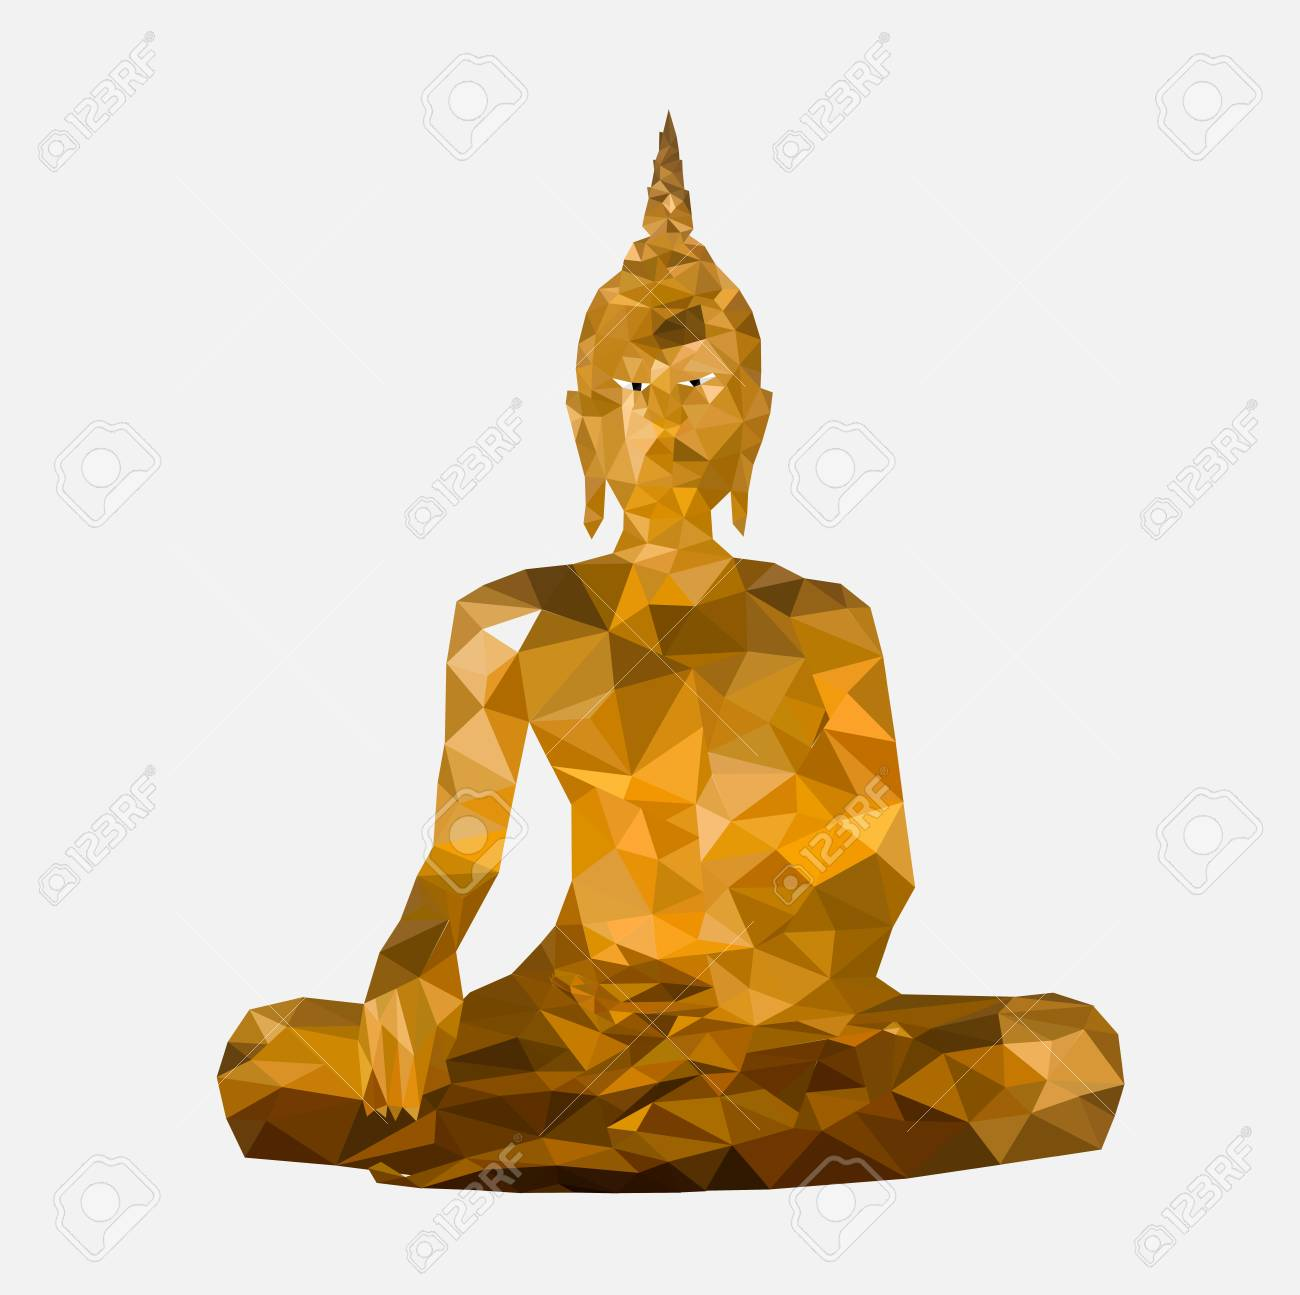 Isolated low poly Buddha statue with white back ground, geometric